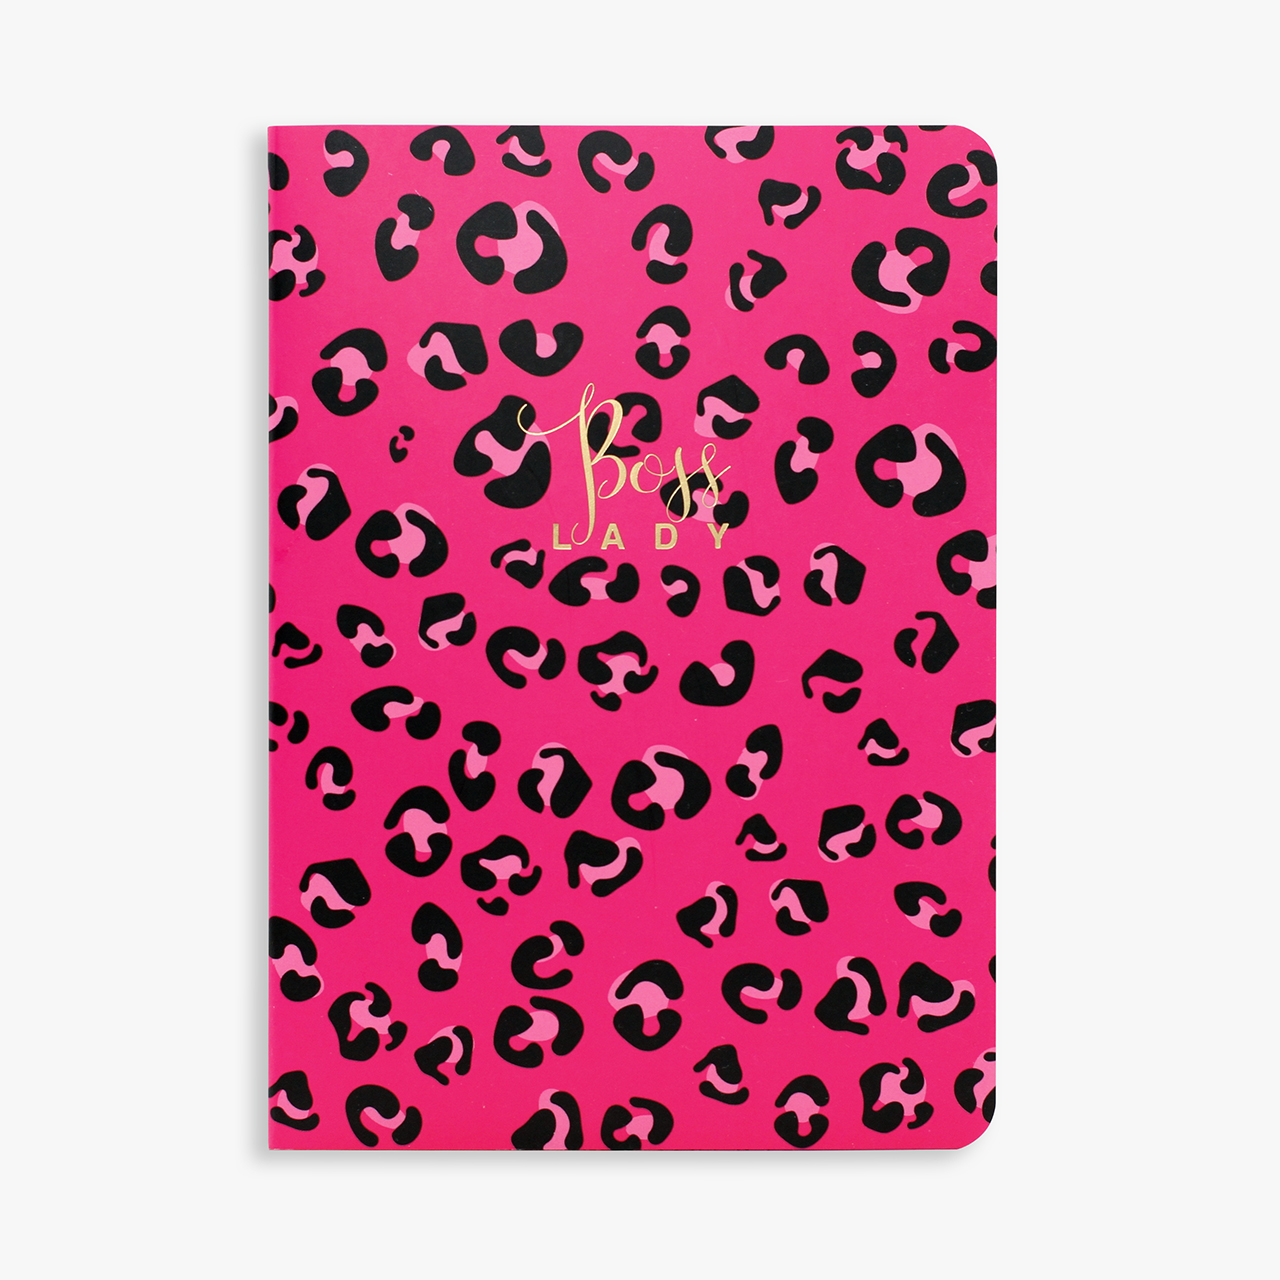 Belly Button Bubble, Leopard Print Notebook